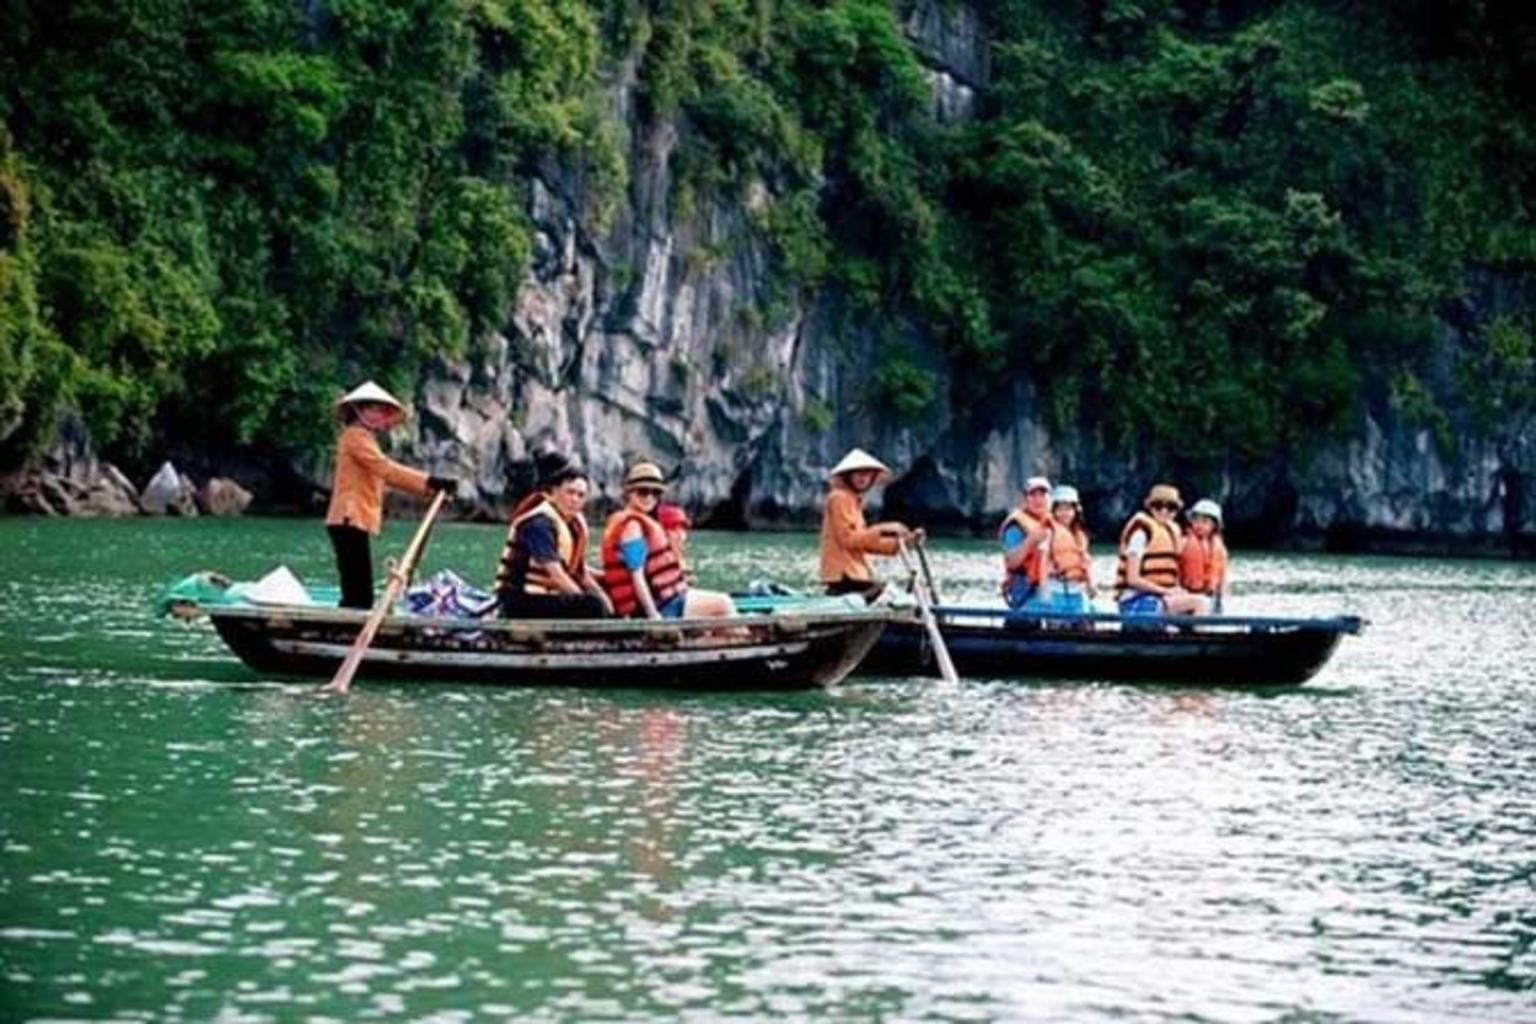 Ha Long Bay Cruise day trip with SEAFOOD Lunch & Kayaking from Hanoi